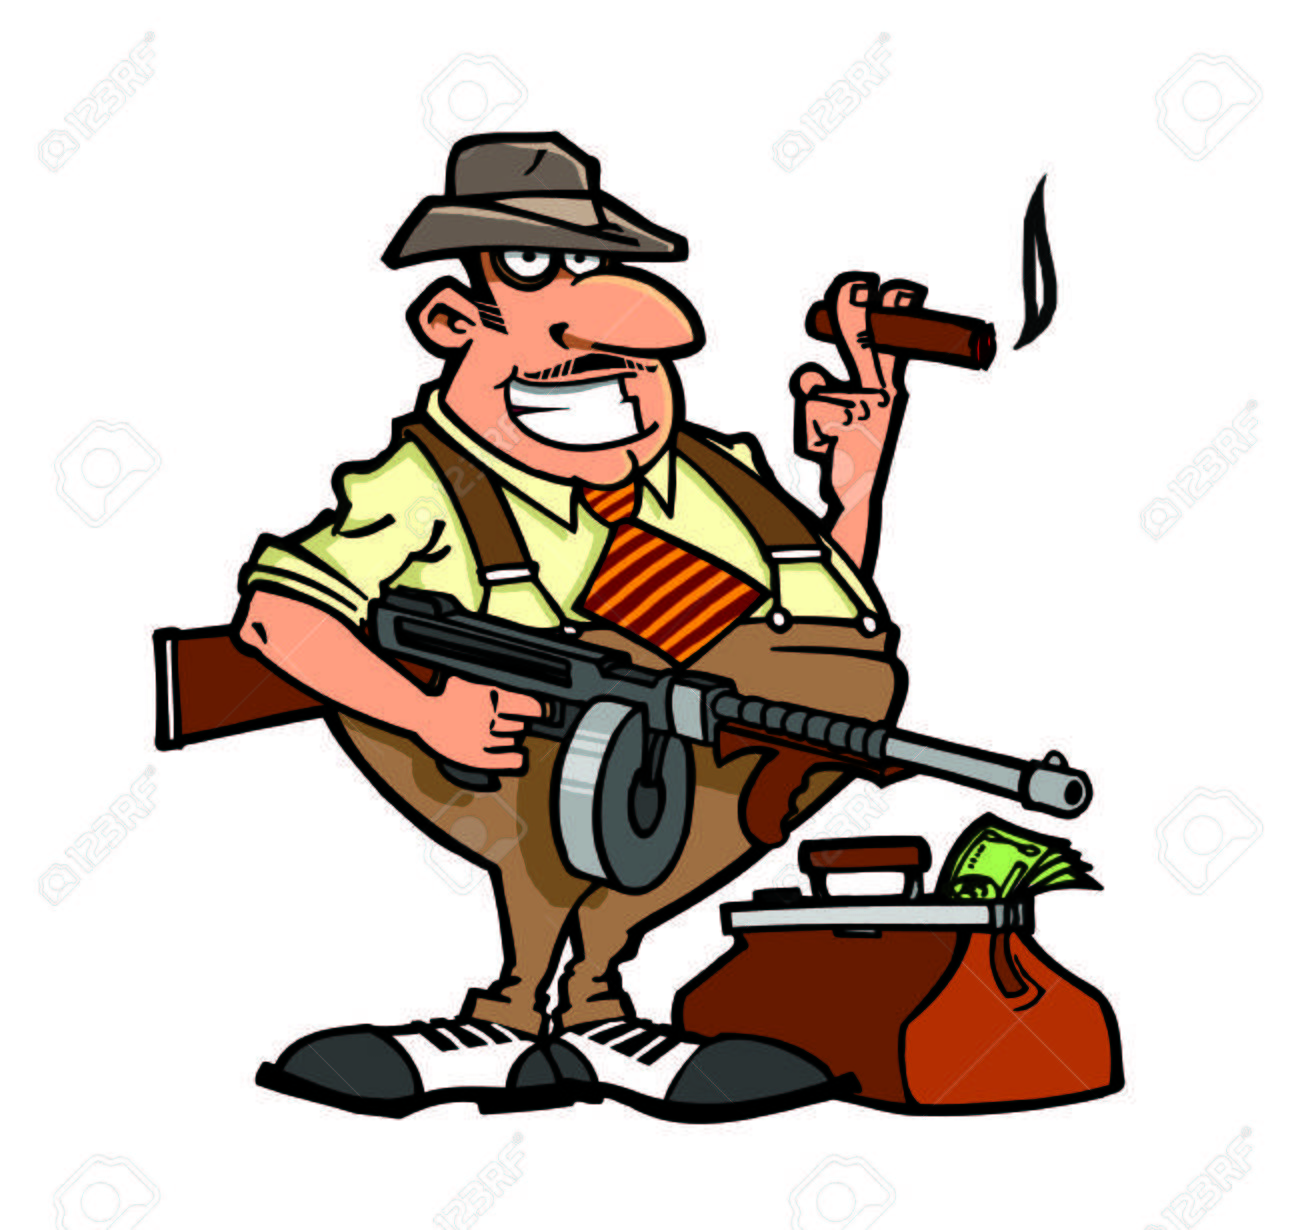 Chicago Gangster With Thompson Machine Gun And Money Bag Stock Photo